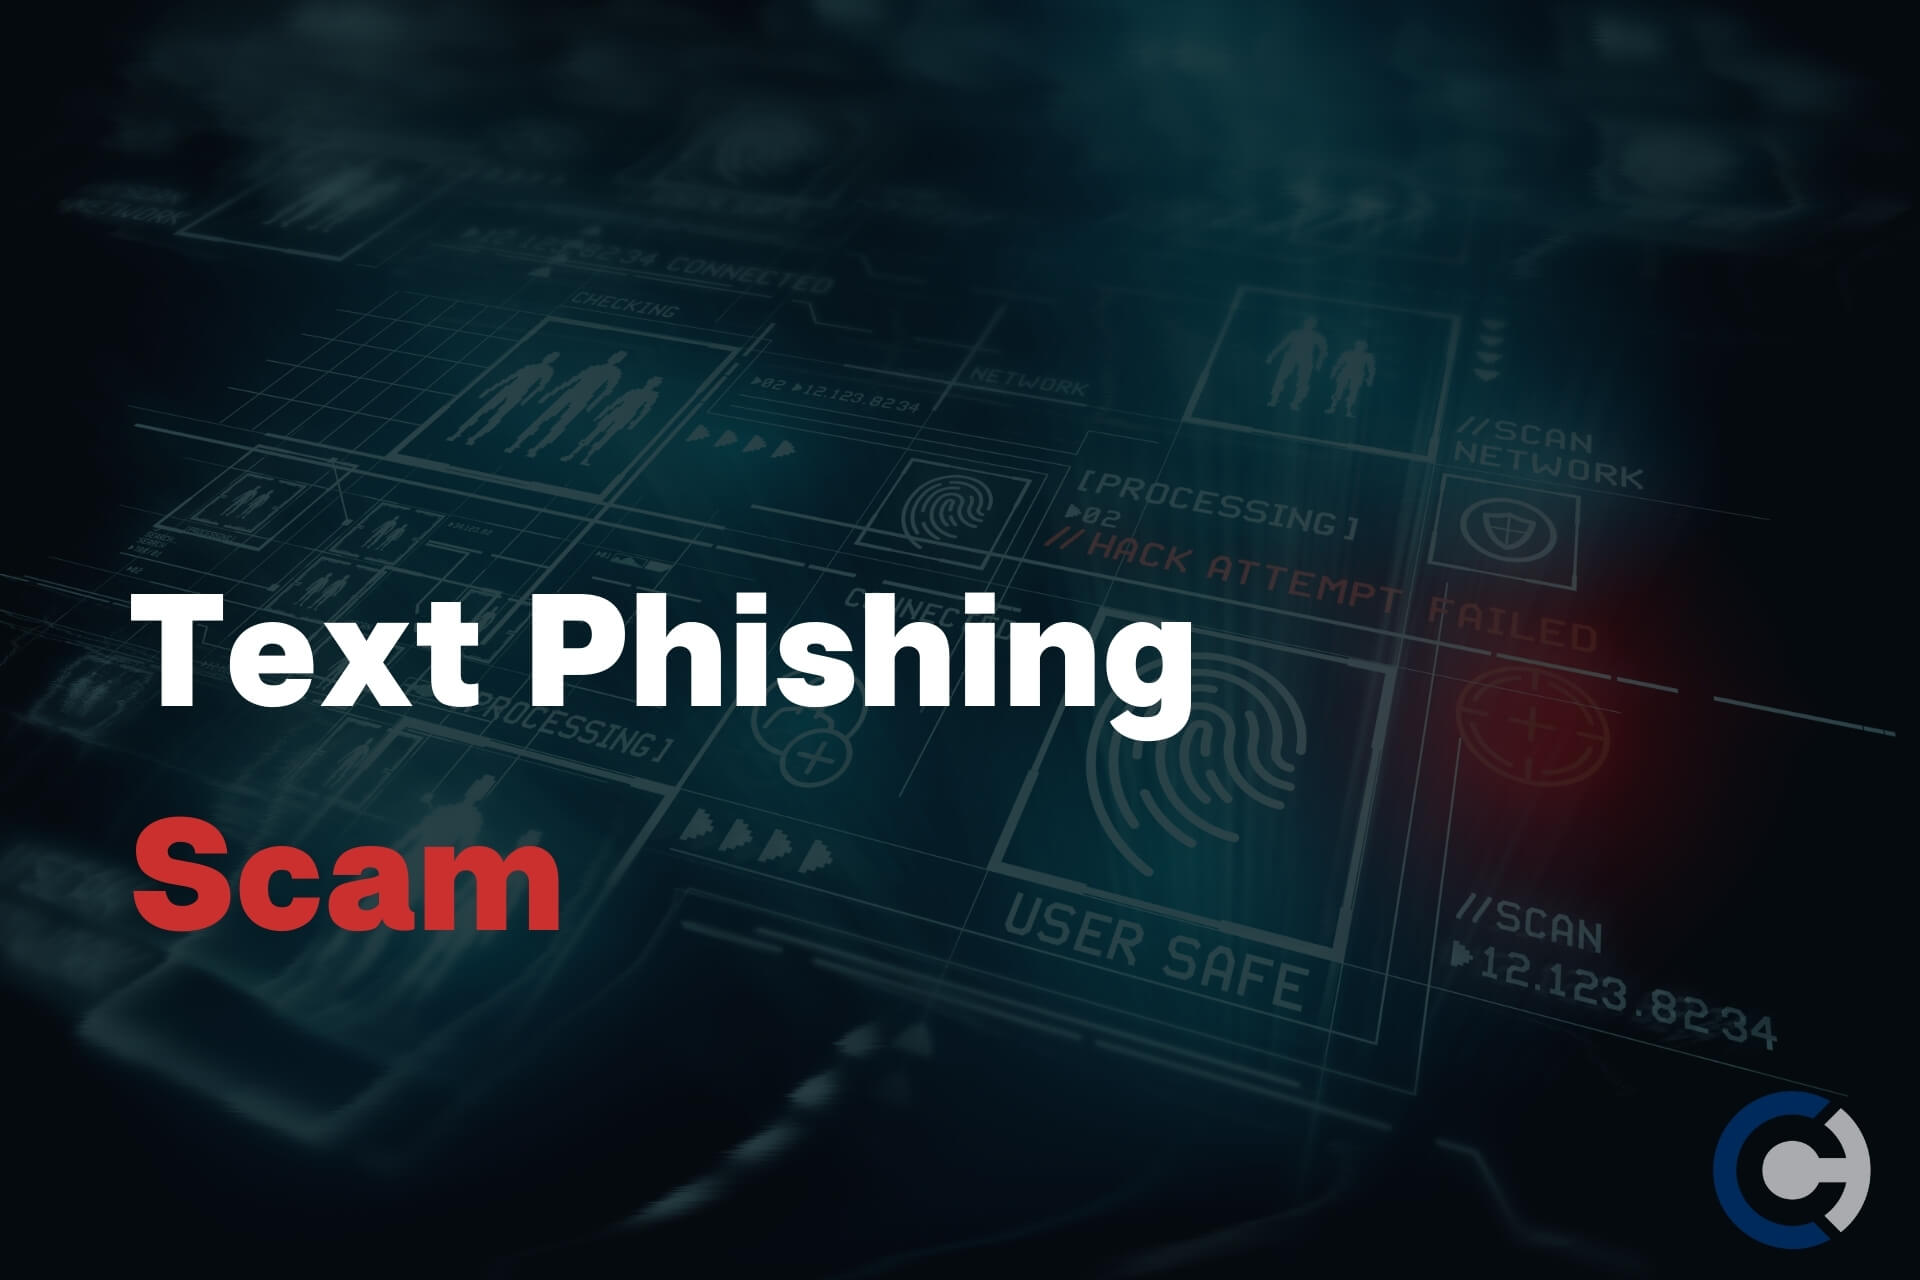 Text Phishing Scam - CAPATA